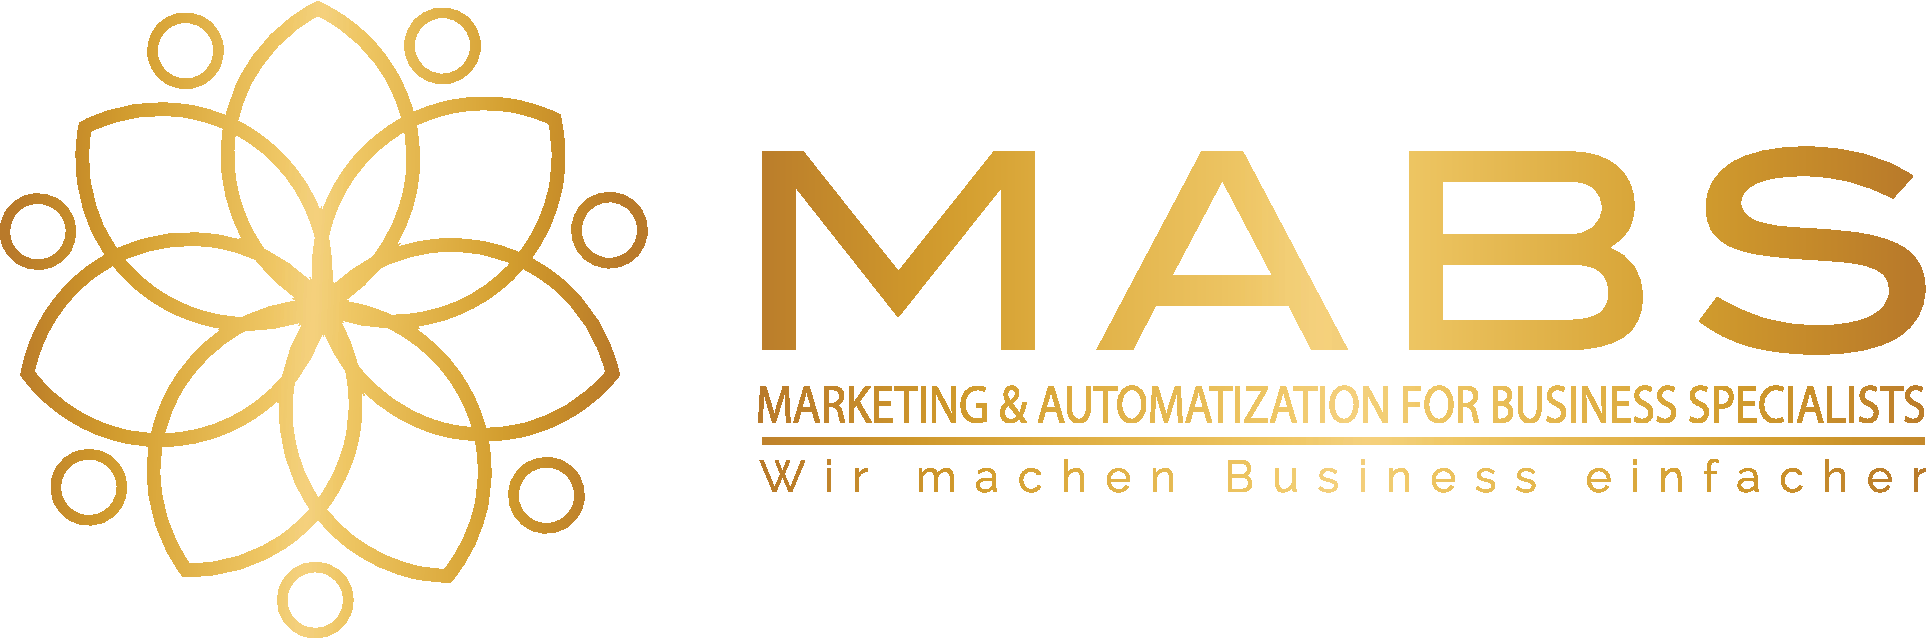 MABS Consutling | Marketing & Automatization for Business Specialists